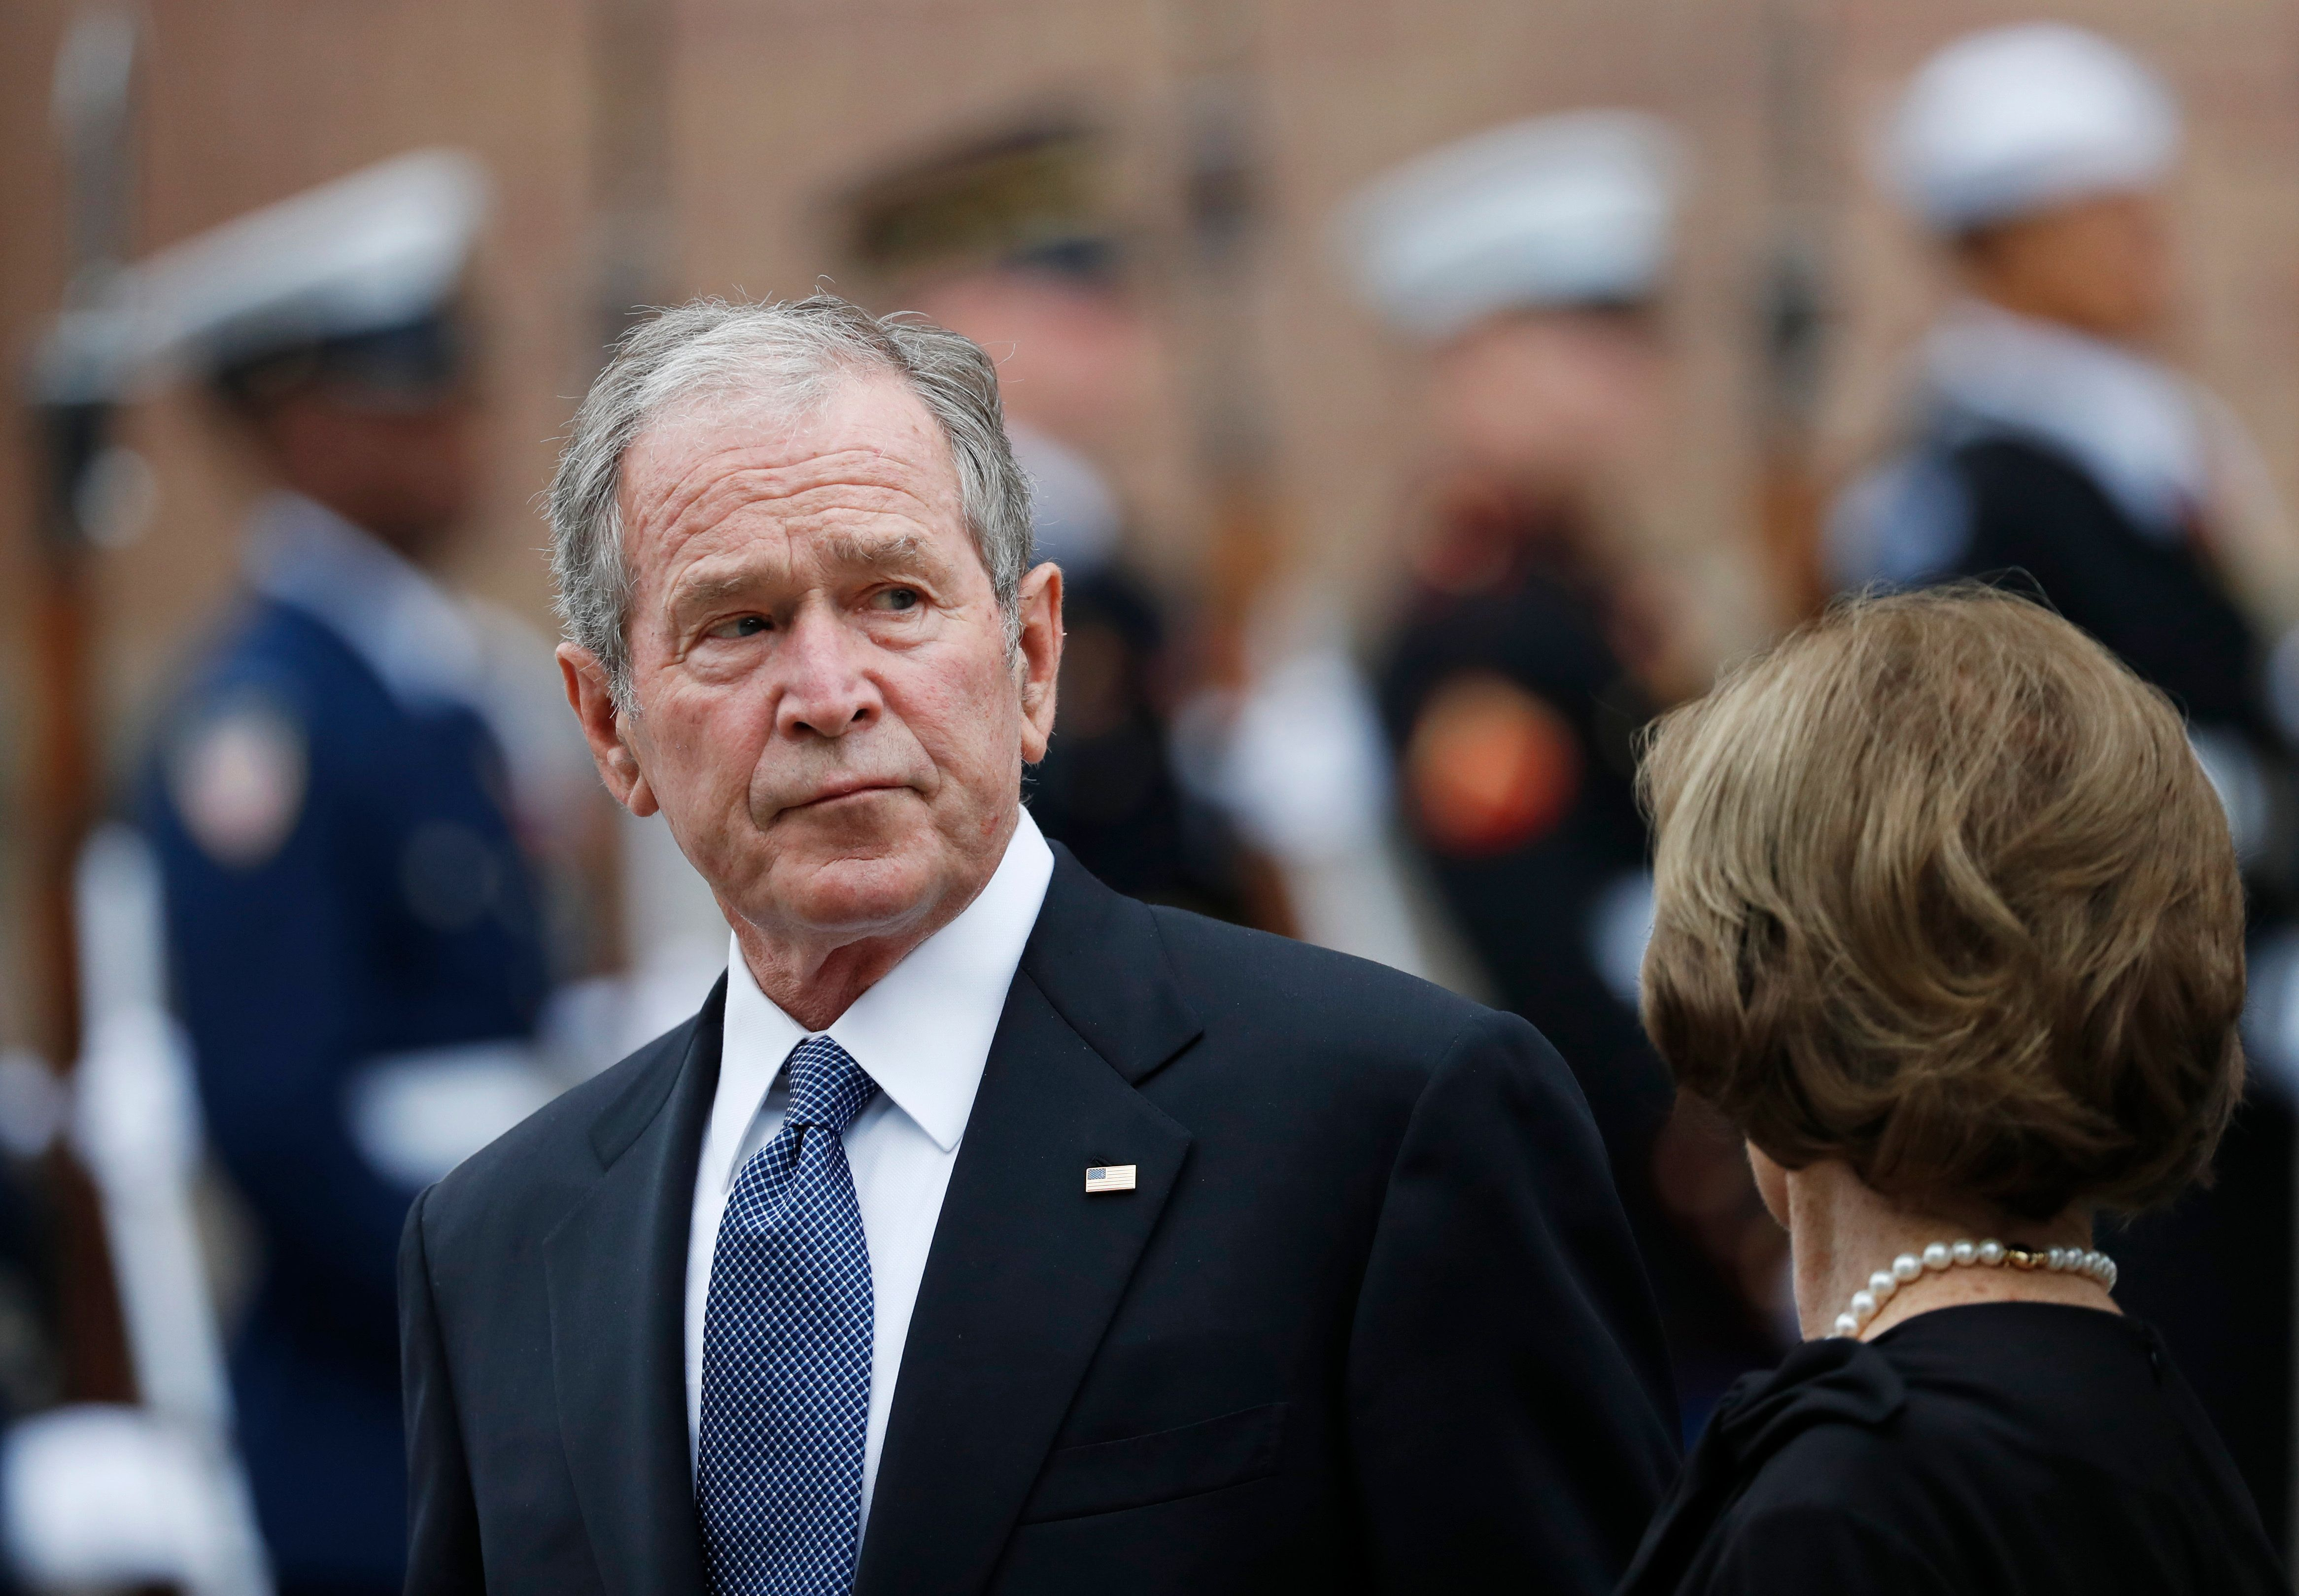 Westlake Legal Group 5c42e467250000e000c590d6 George W. Bush Calls For End To Shutdown With Pizza Delivery